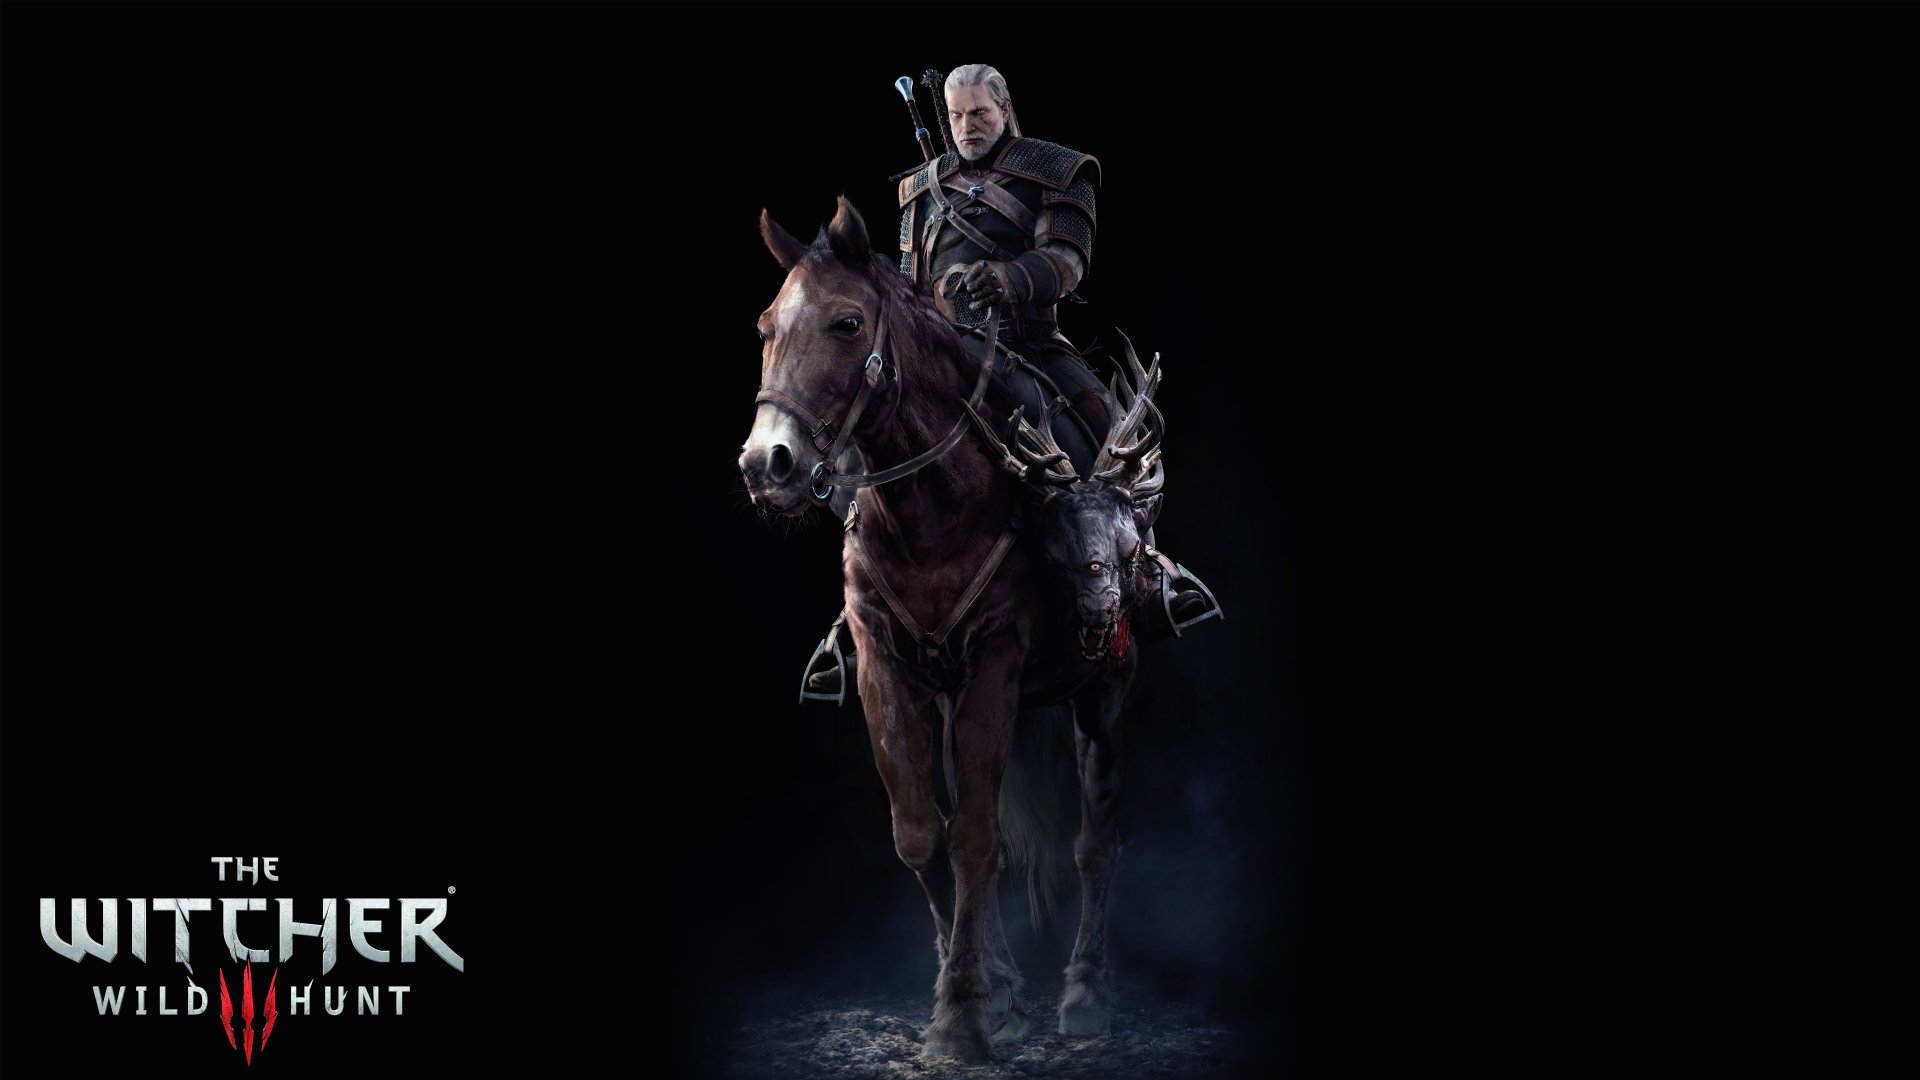 Video Game - The Witcher 3: Wild Hunt  Geralt of Rivia The Witcher Wallpaper